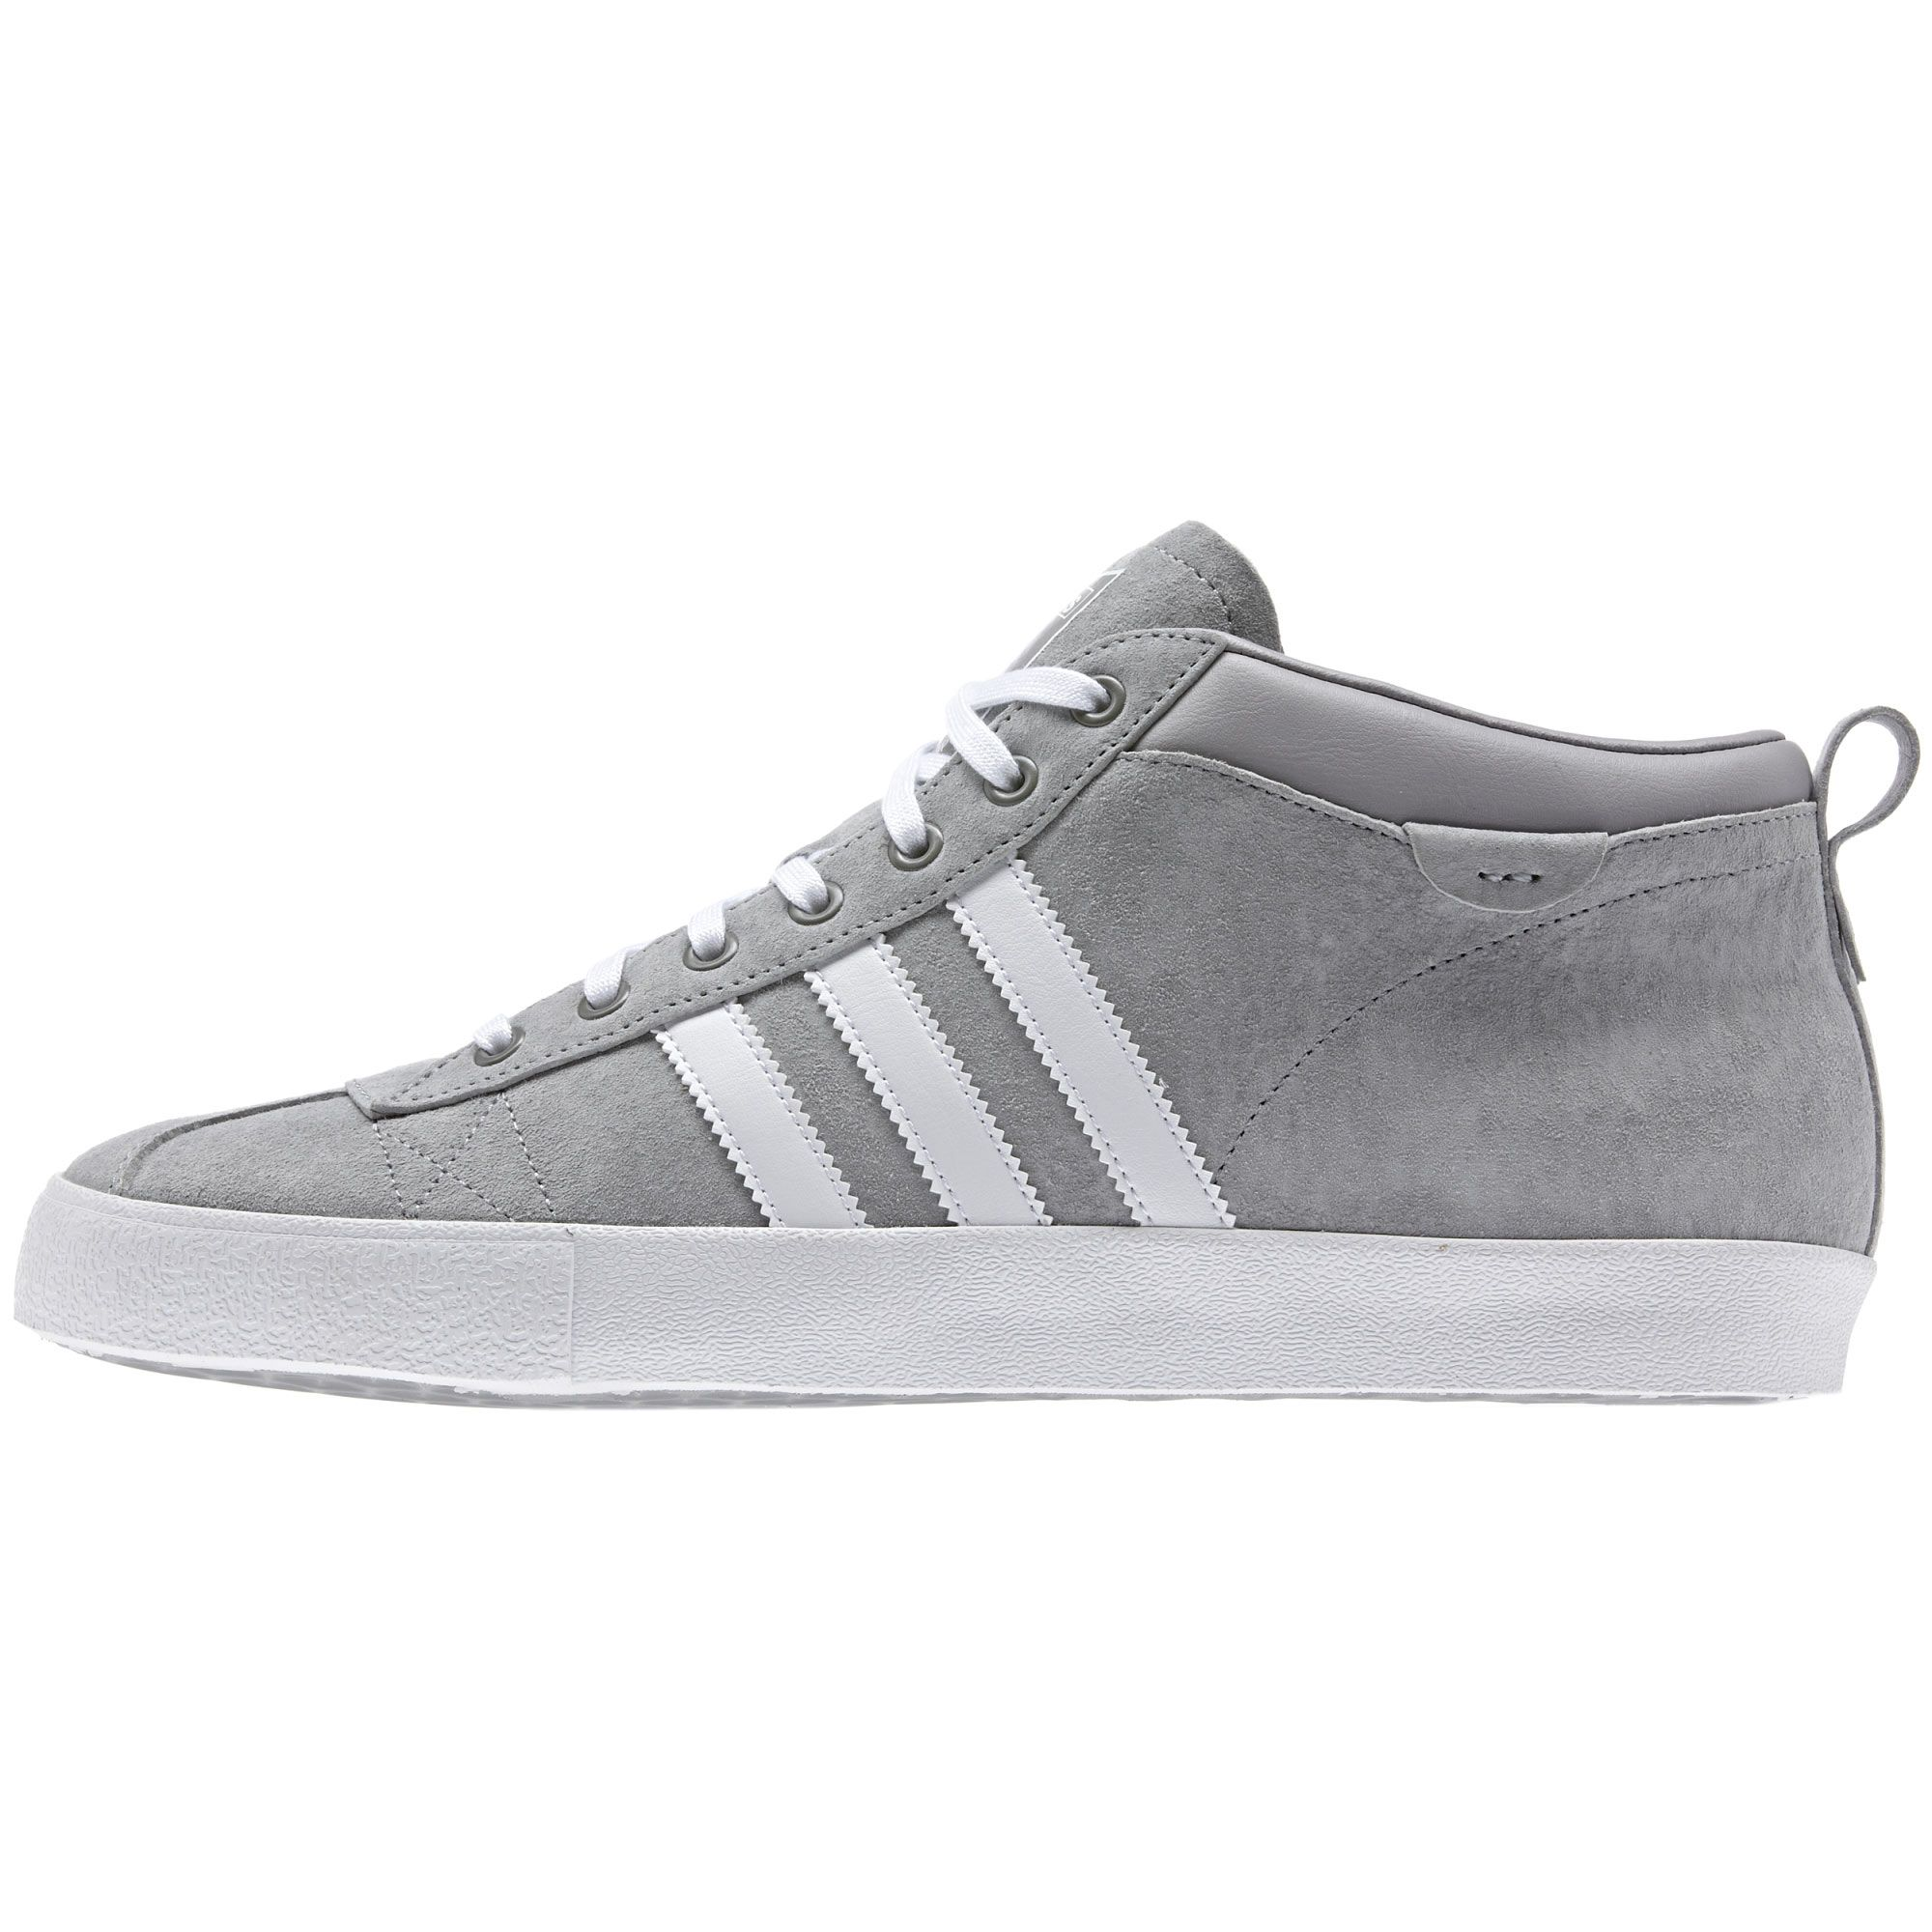 adidas gazelle mid grey white mens nz